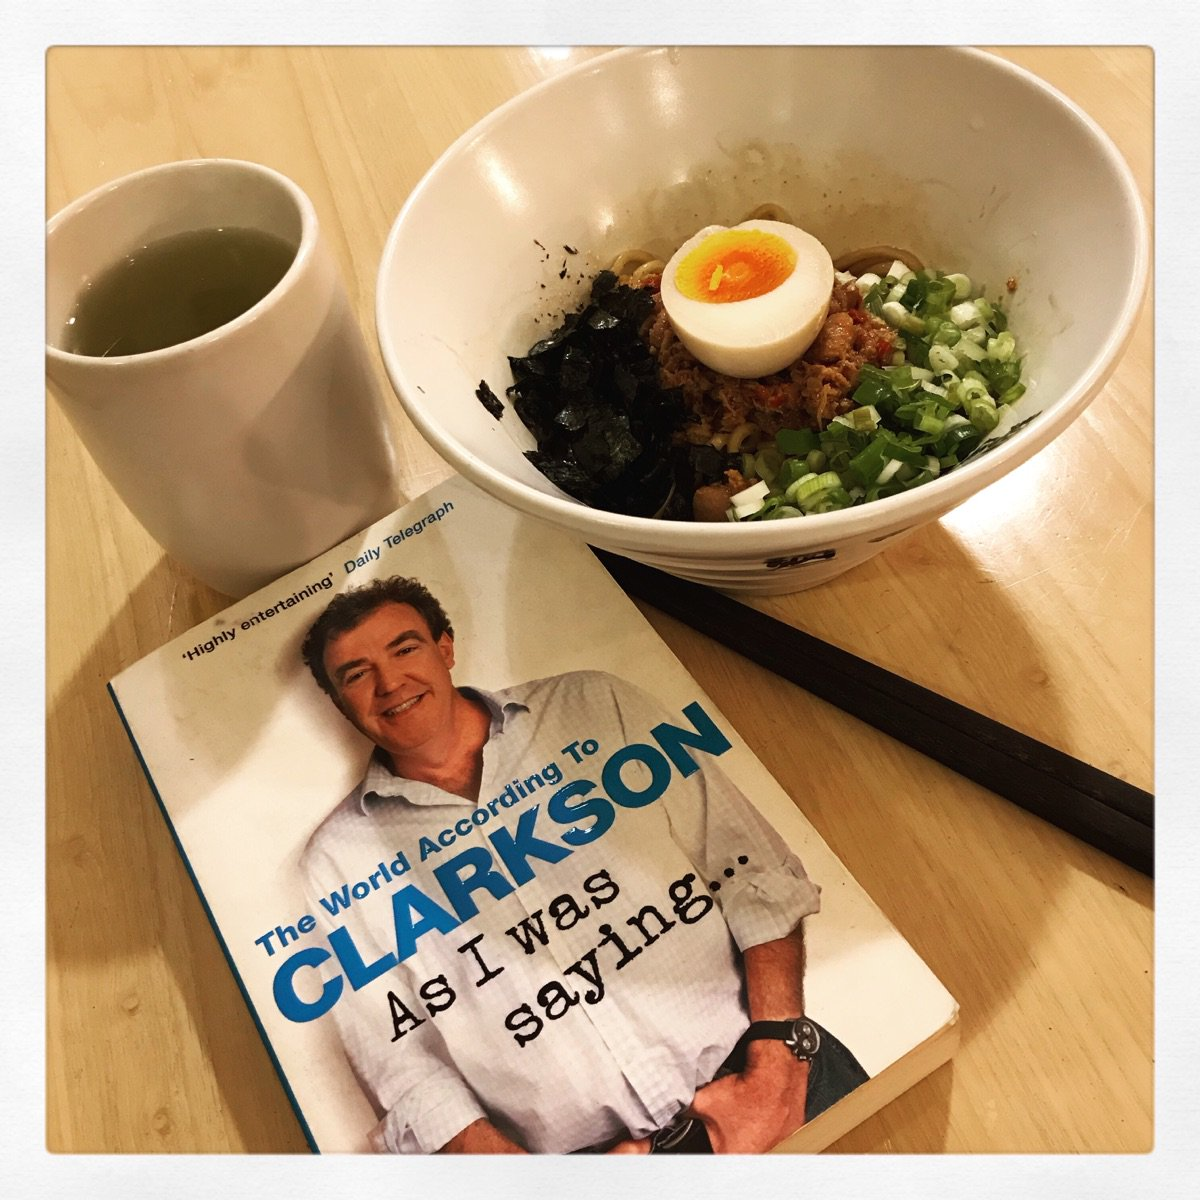 A very late lunch with @jeremyclarkson